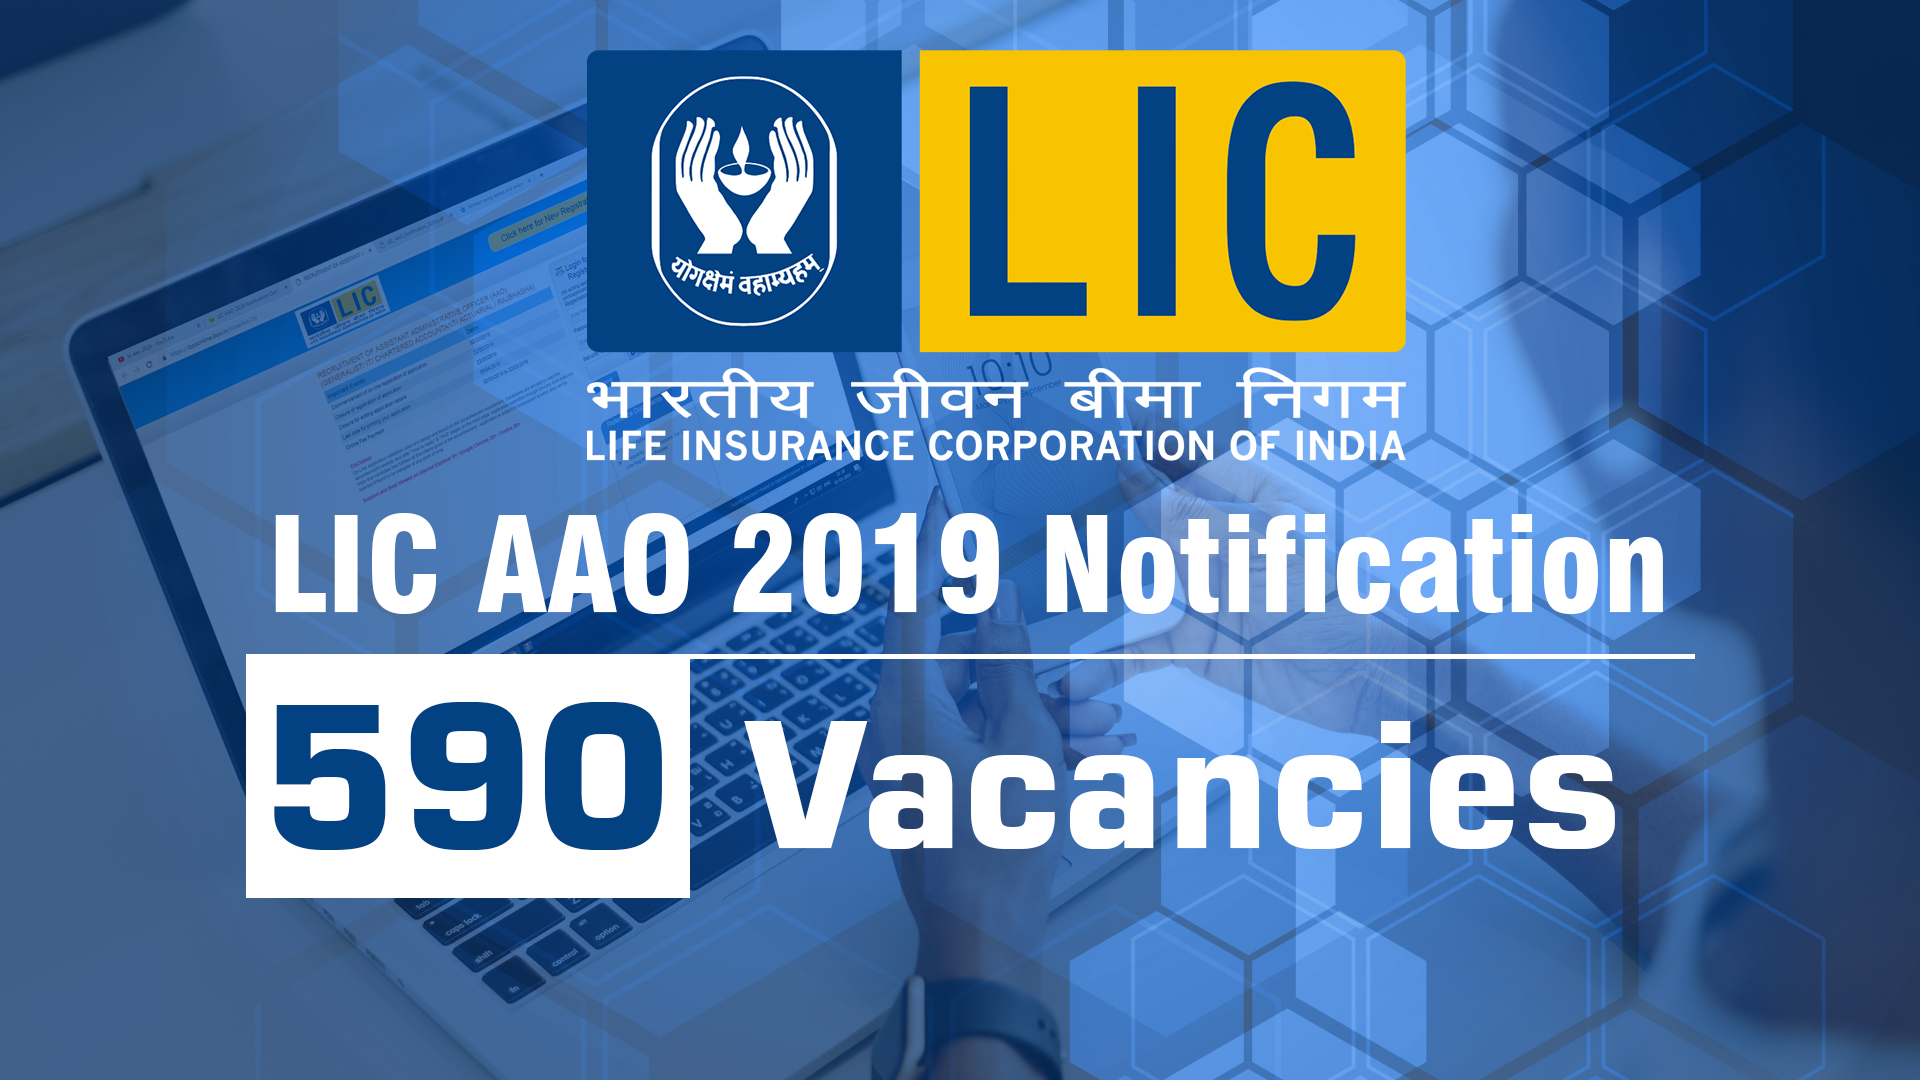 LIC AAO Recruitment Notification 2019 | 590 Vacancies | Any Degree Qualification